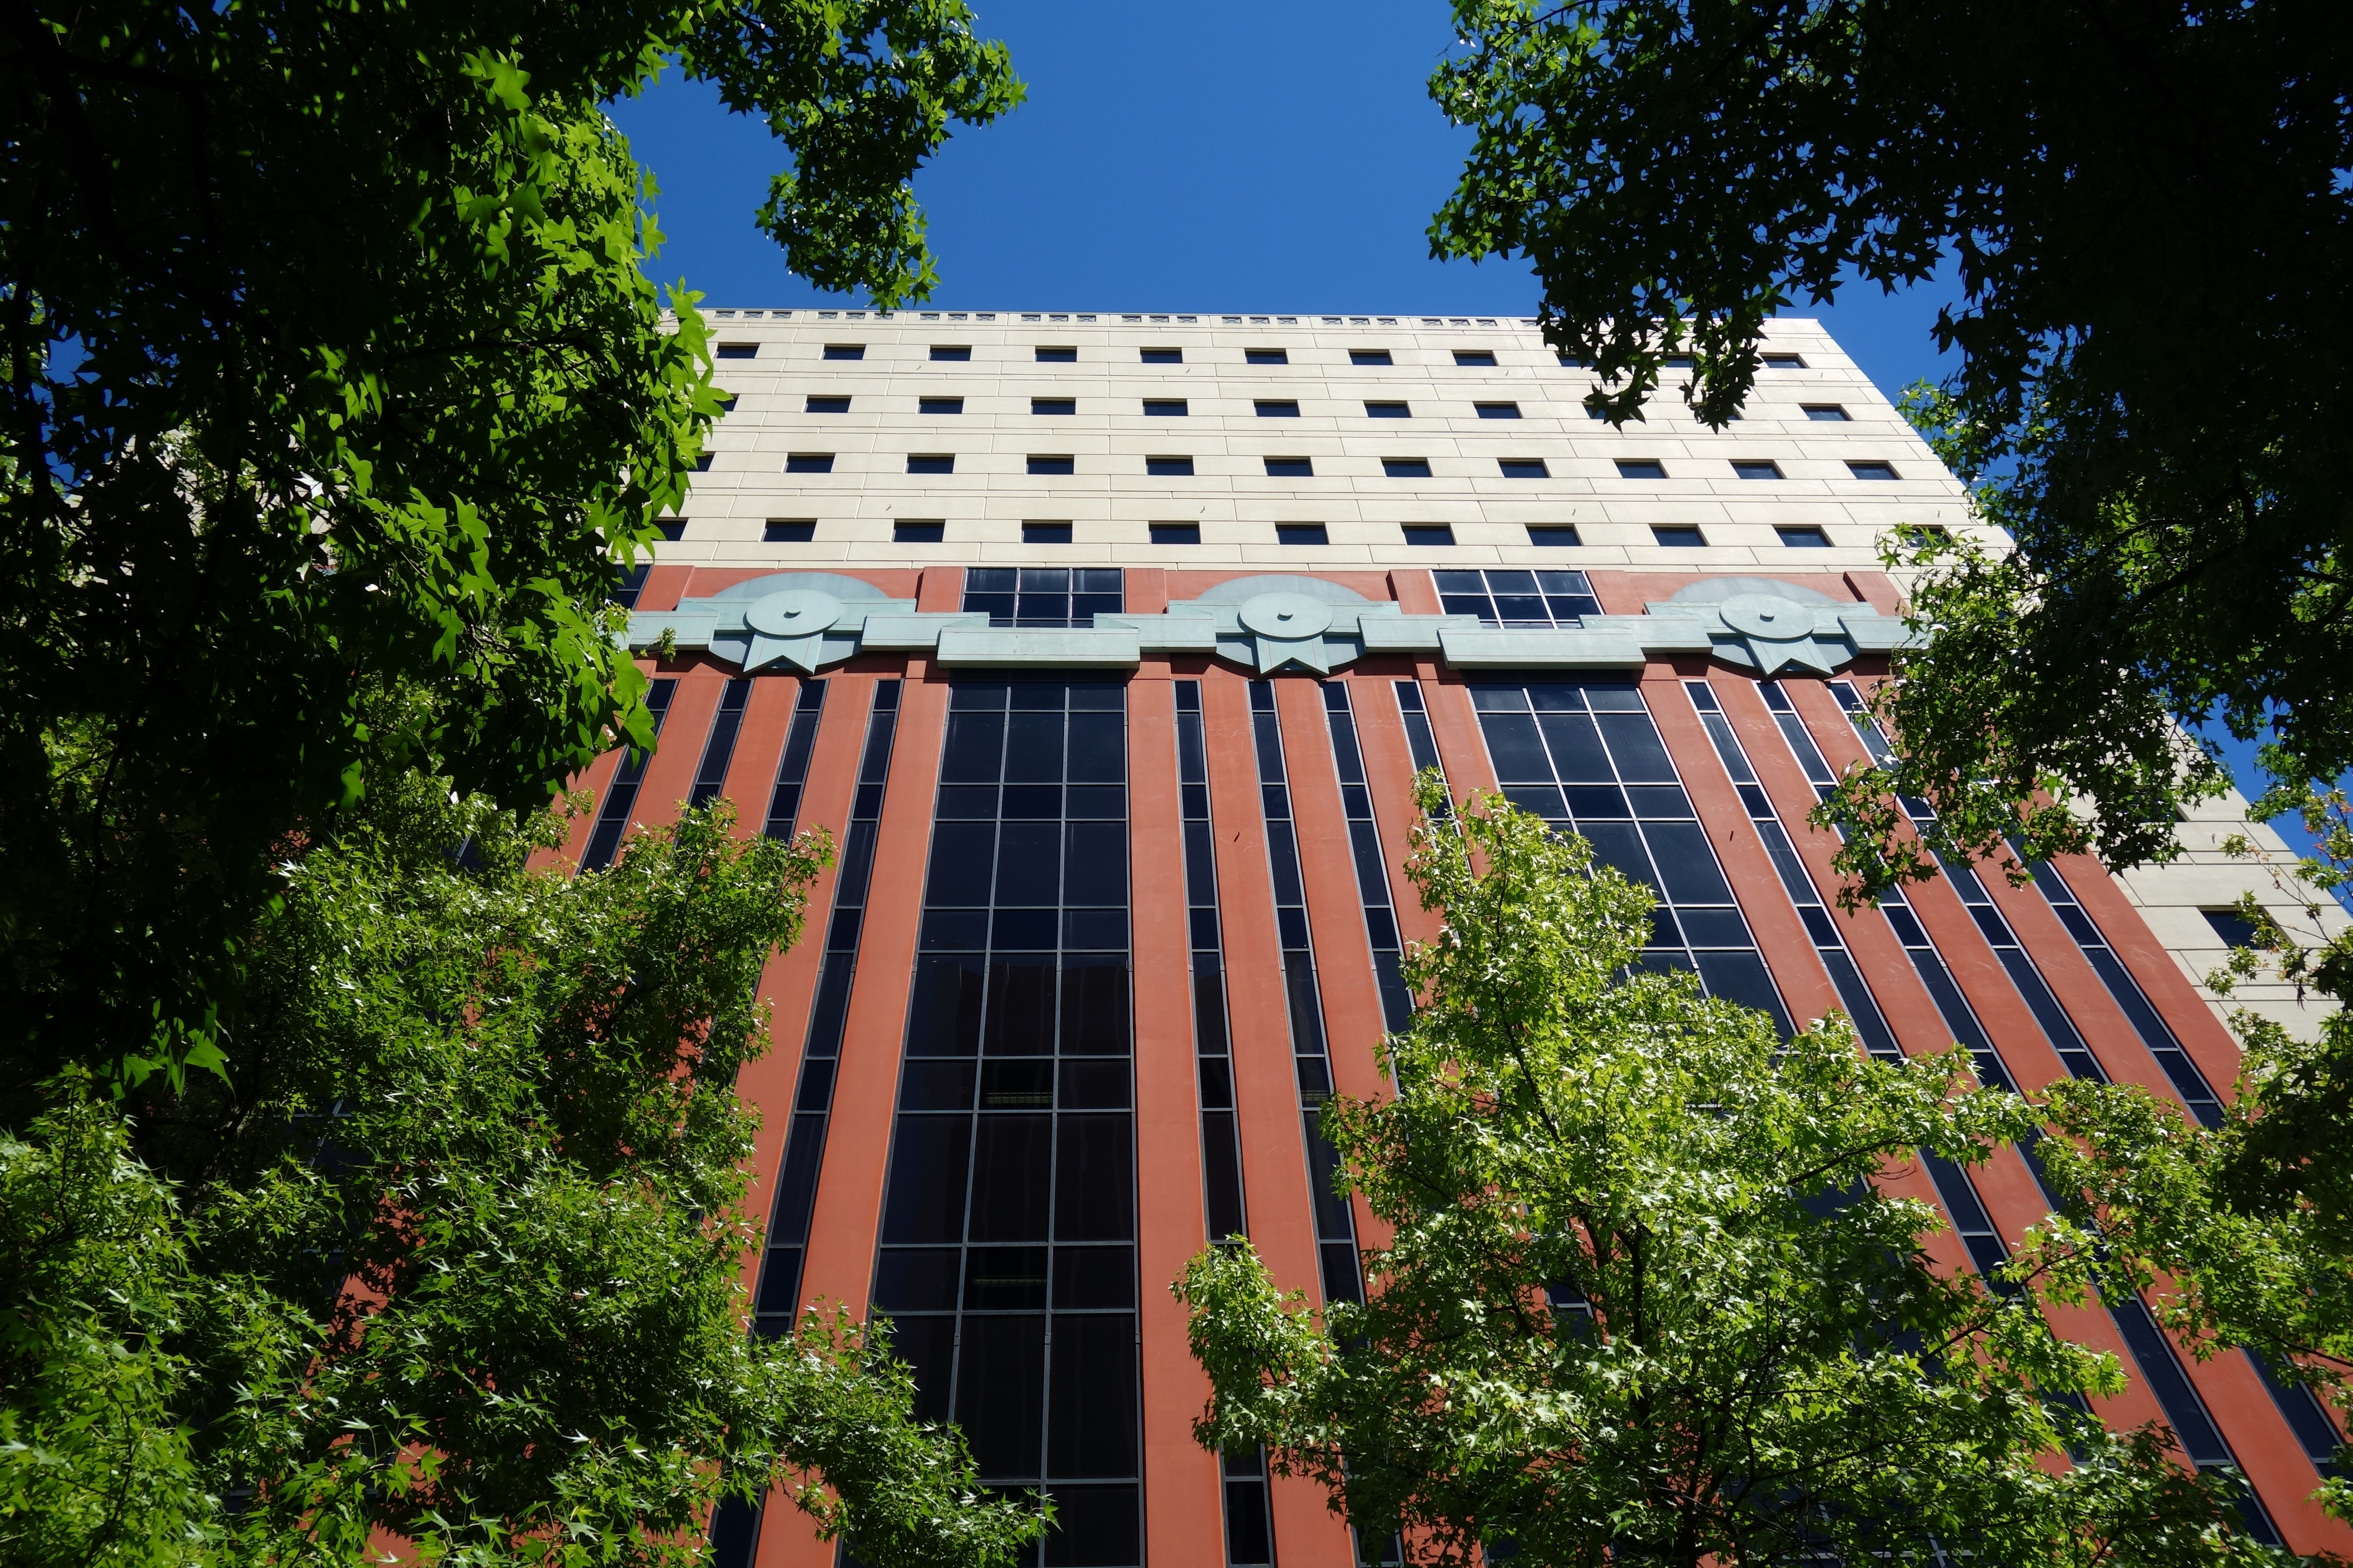 Portland Building on track to be delisted from National Register of Historic Places